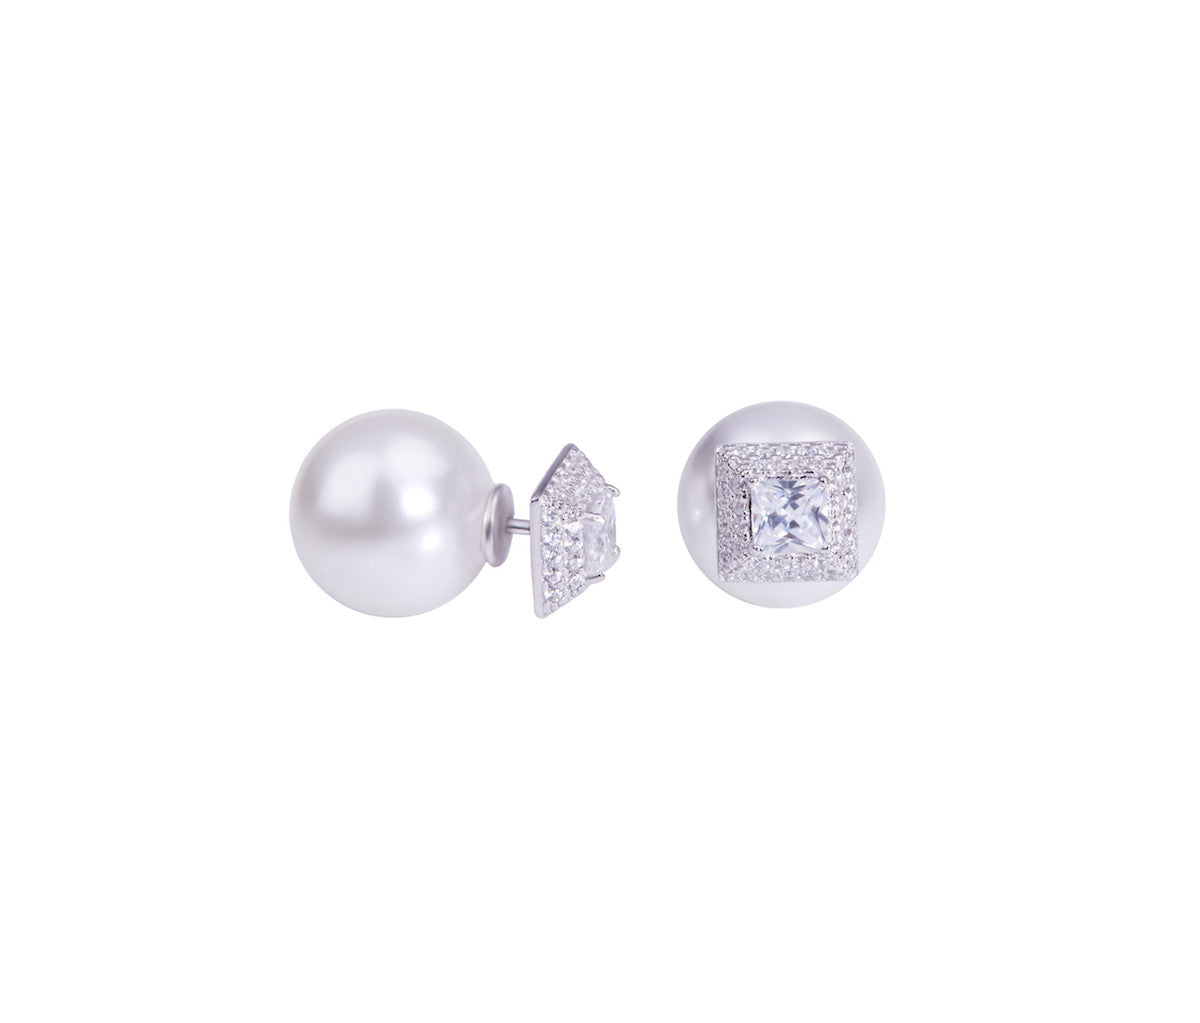 Silver Pyramid & Pearl Earrings